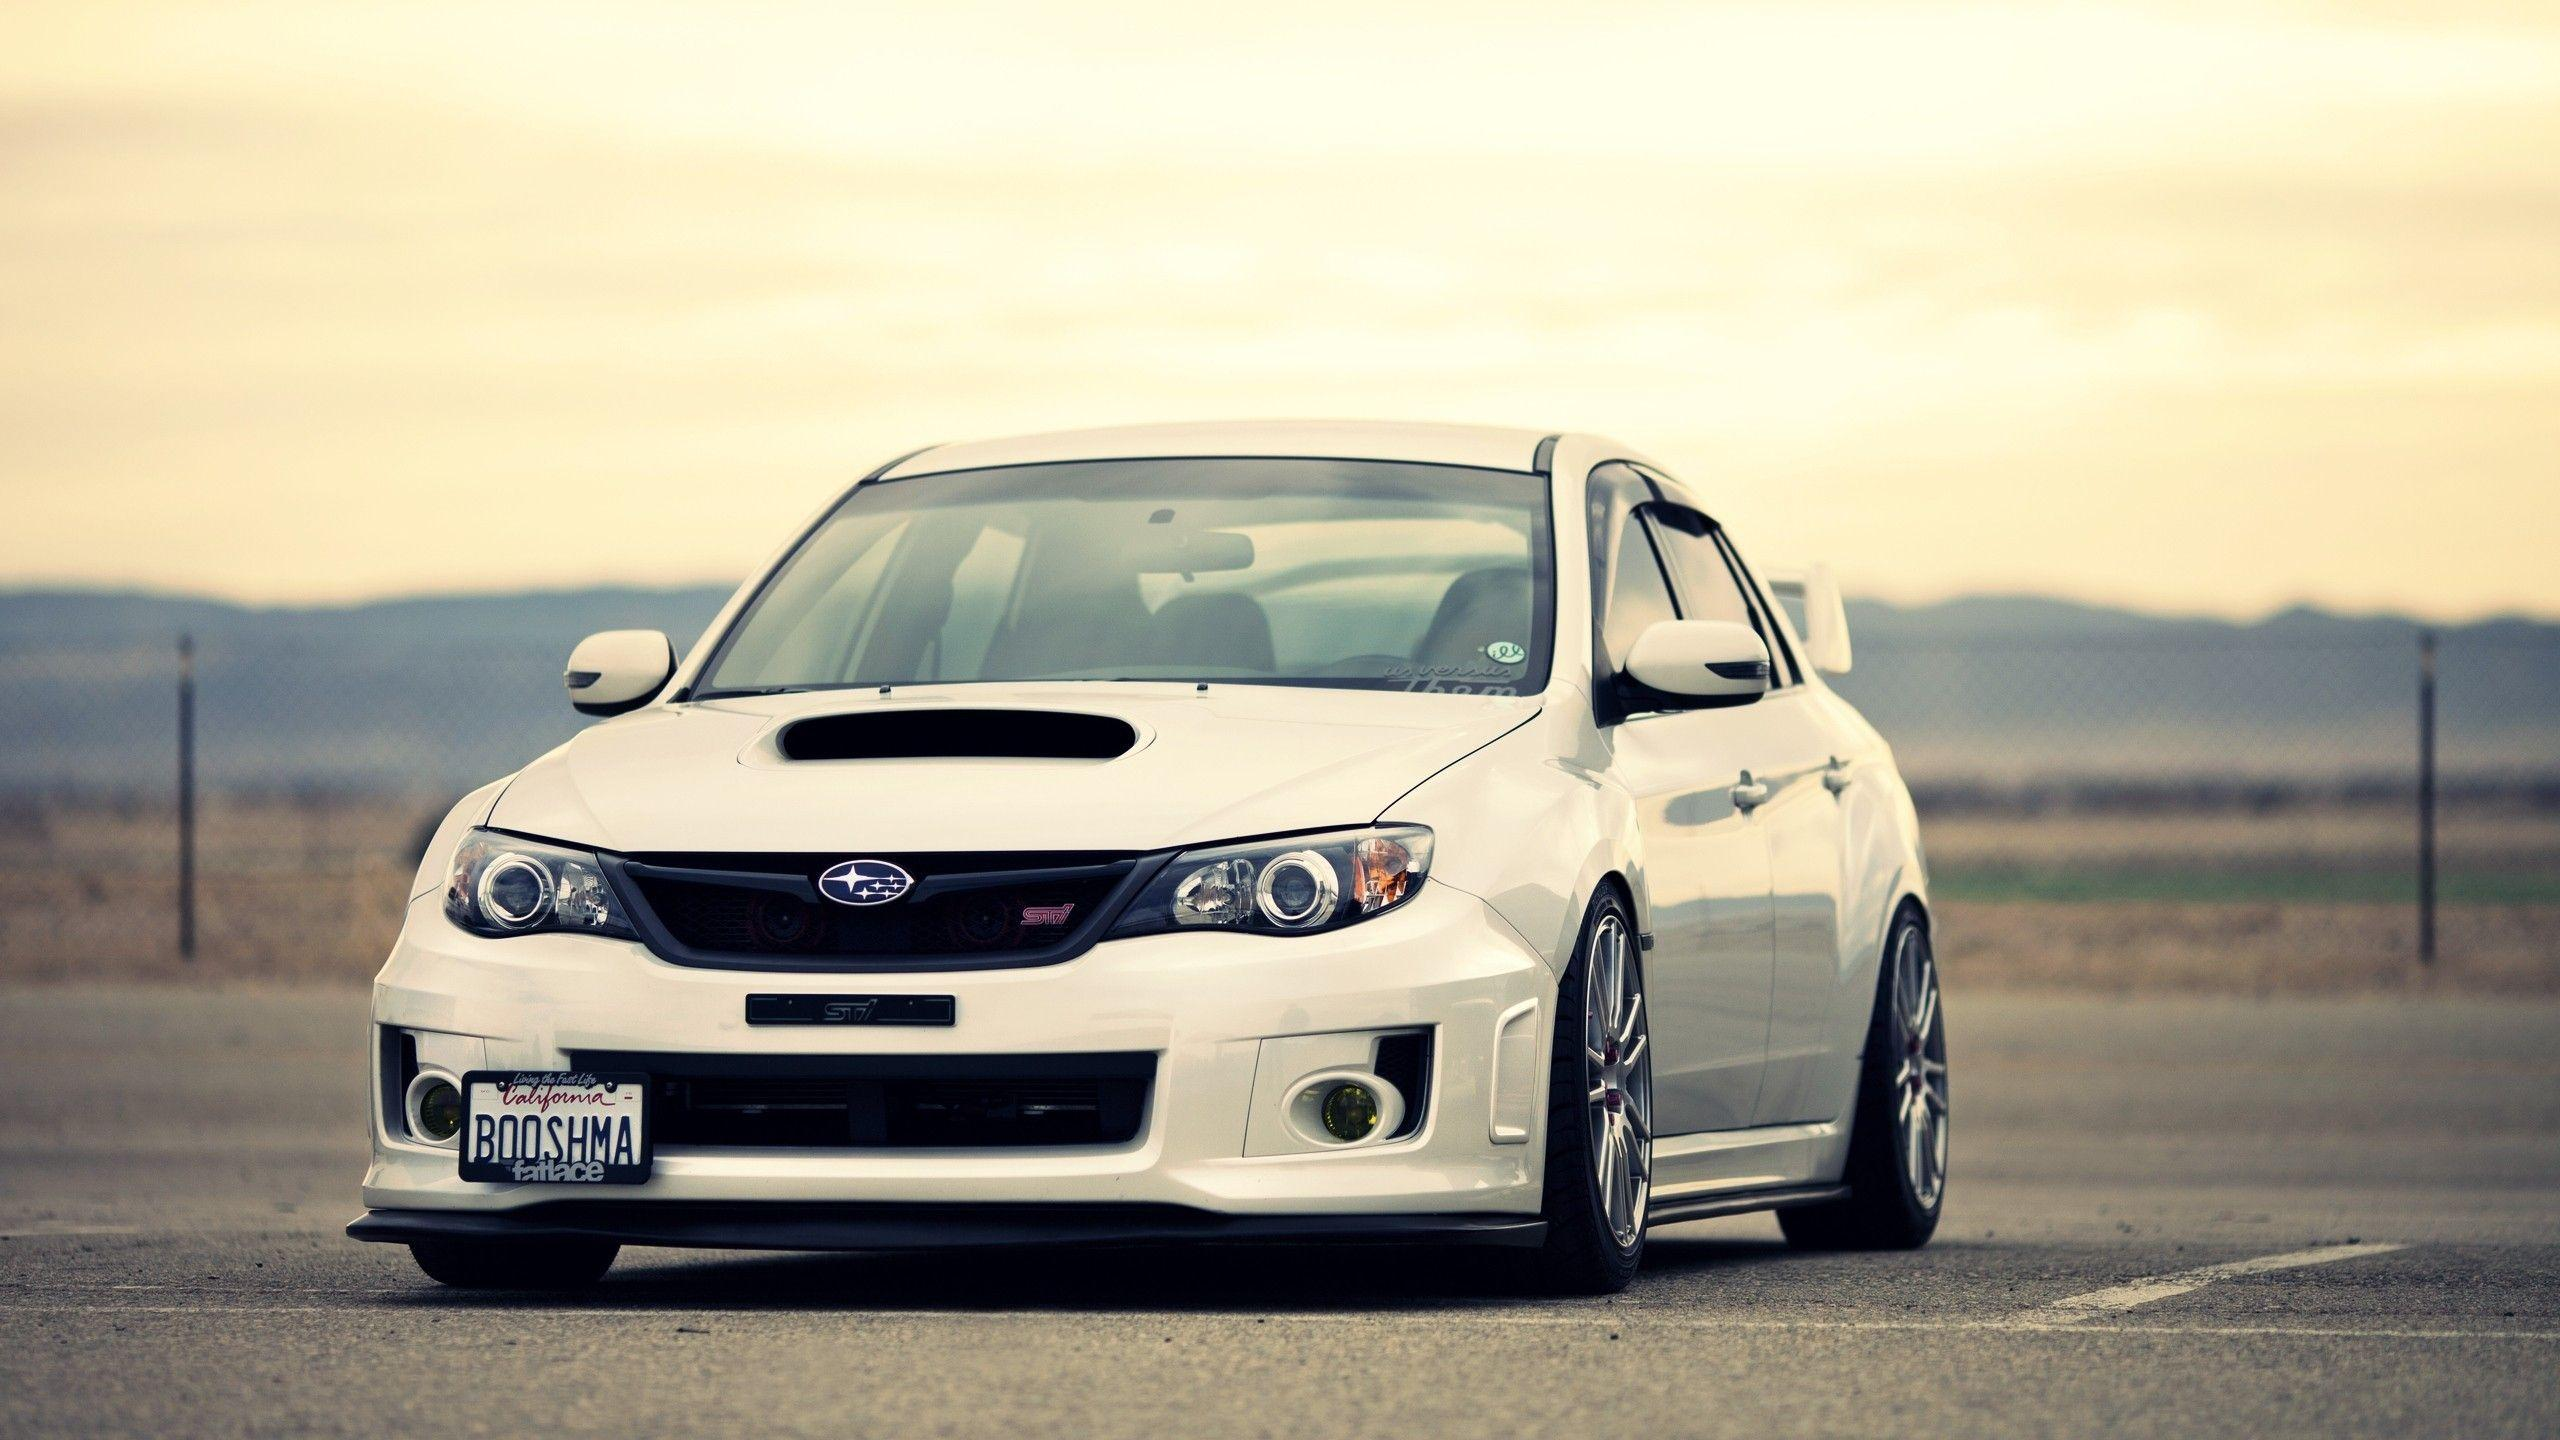 Cars subaru impreza wrx sti wallpaper | AllWallpaper.in #16358 | PC | en